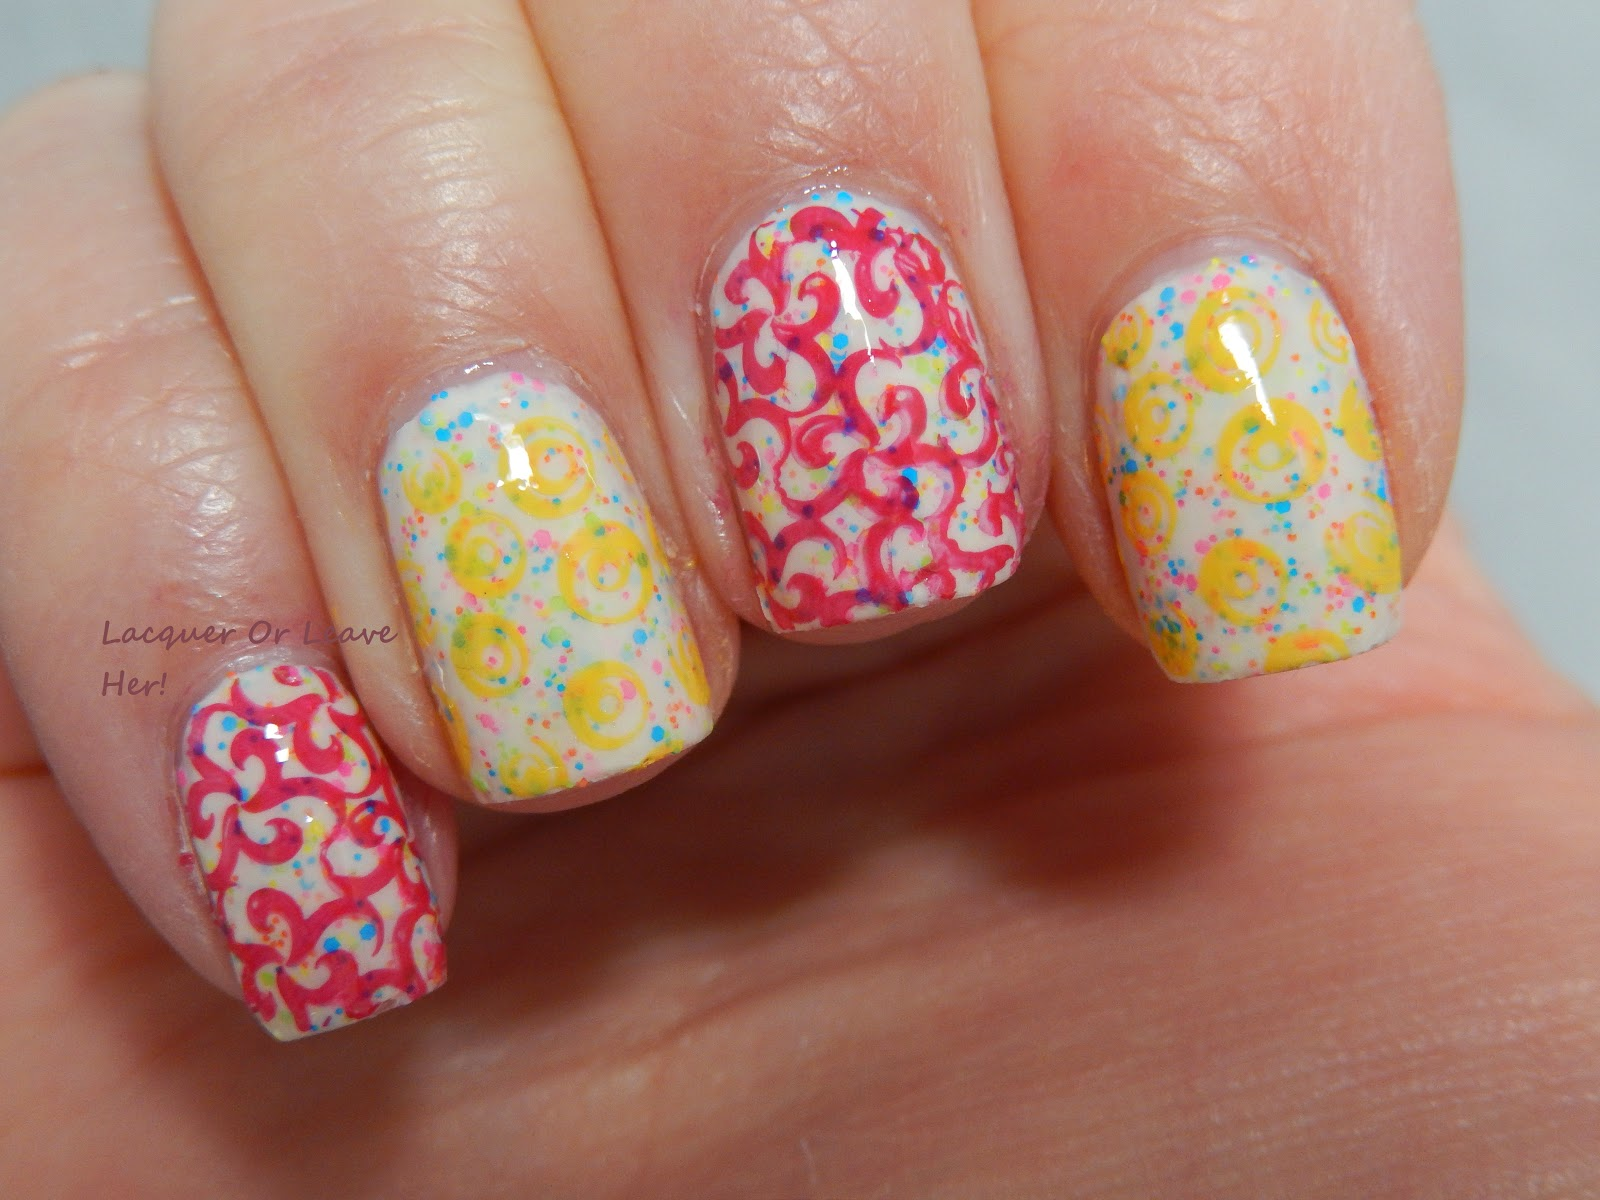 InDecisive-Nail Lacquer Jawbreaker stamped